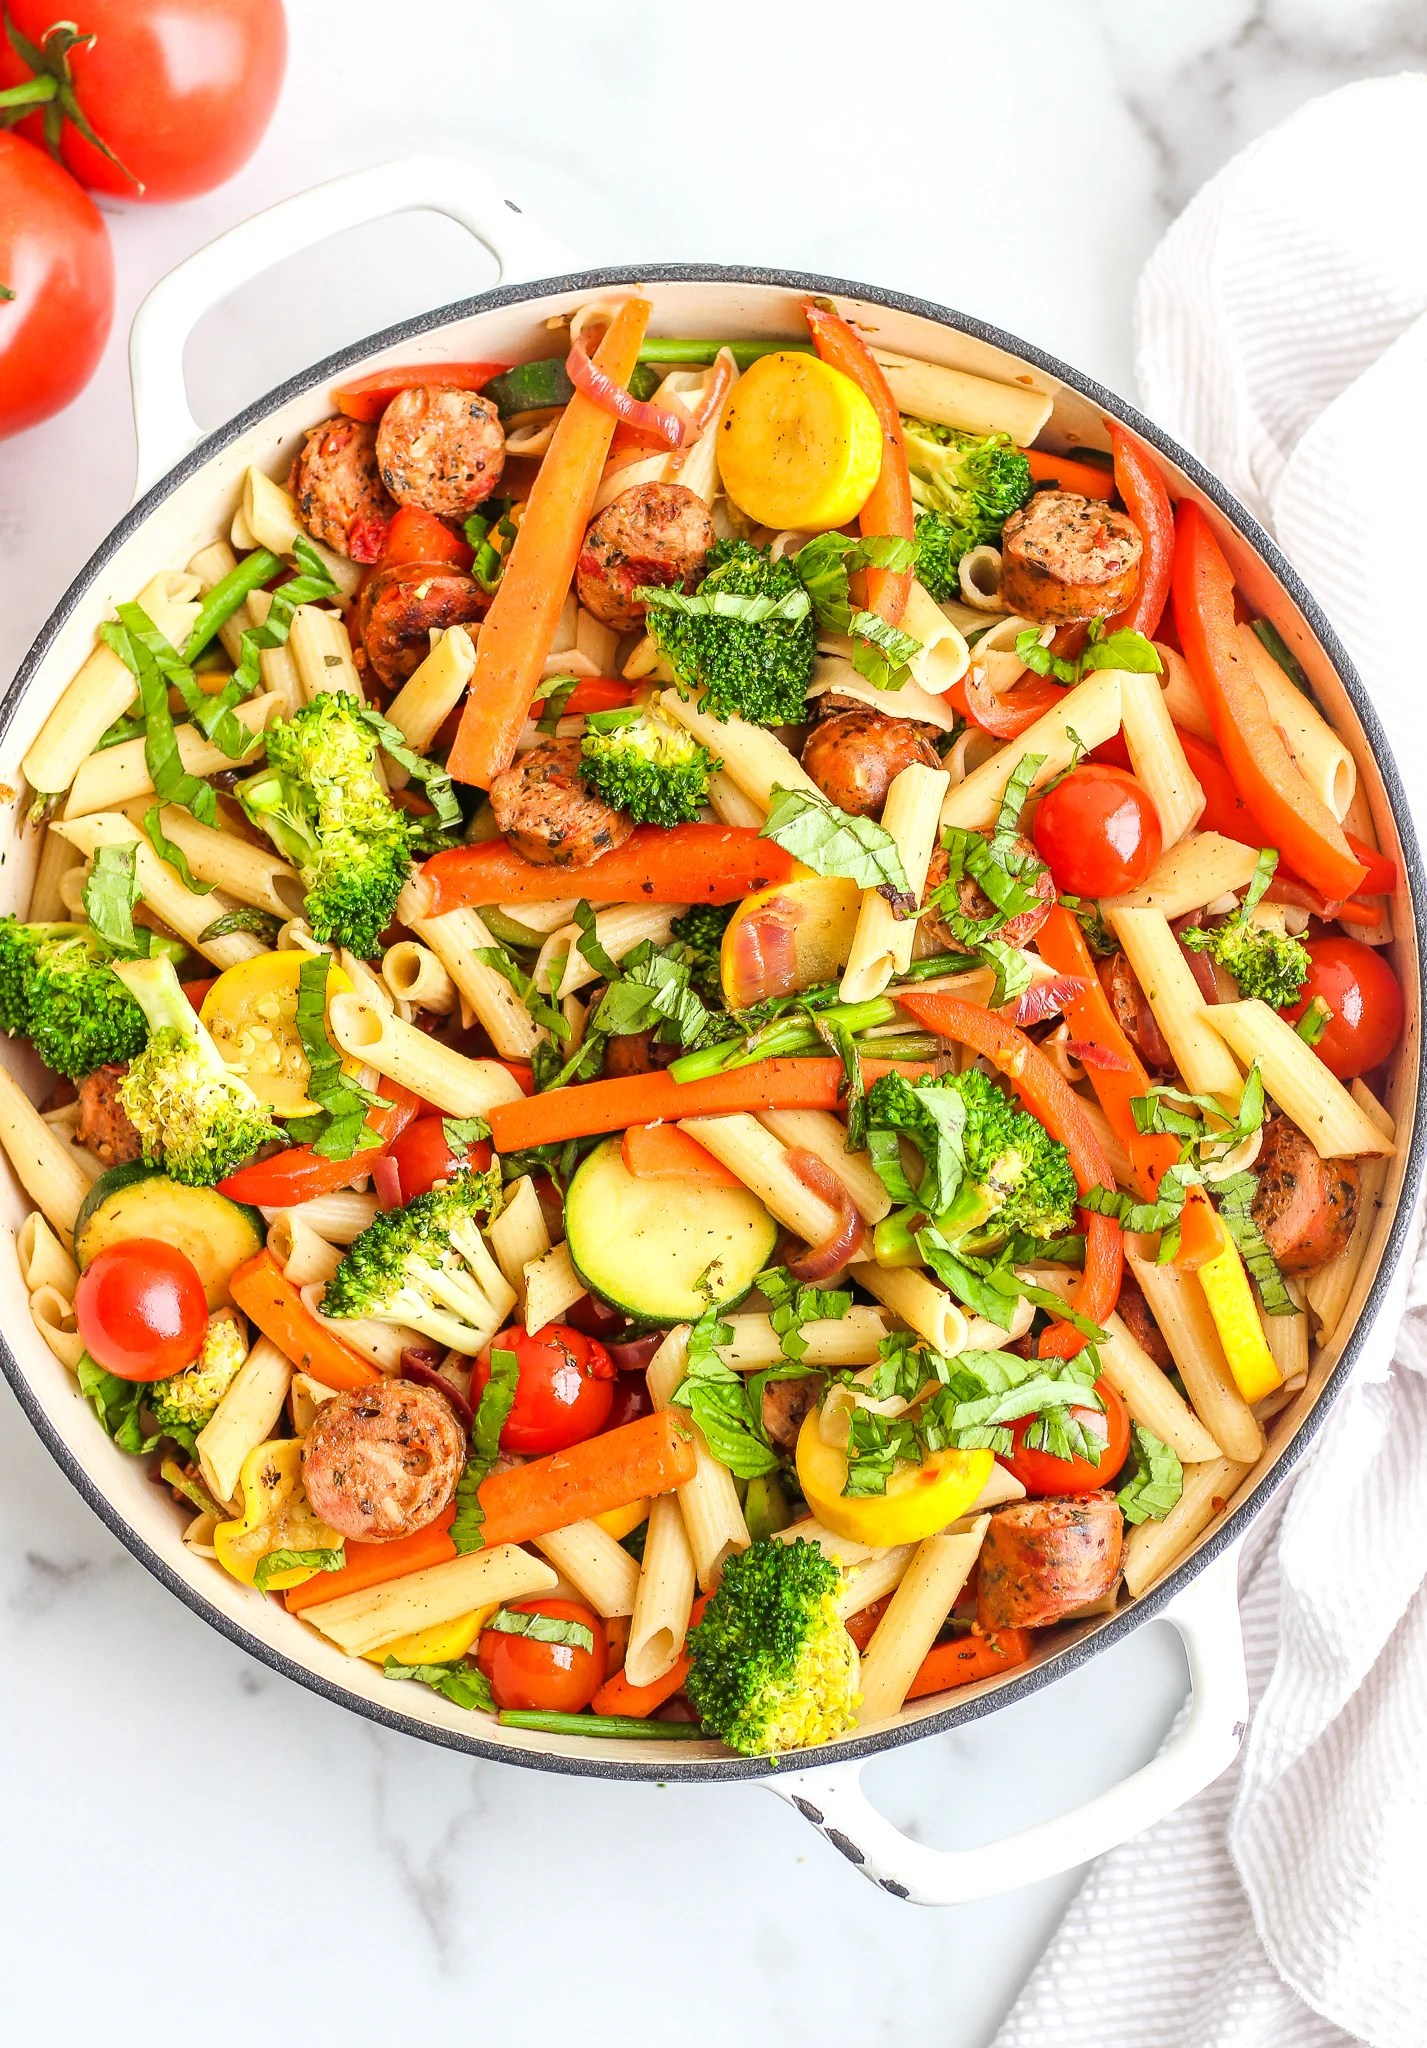 White pan filled with penne pasta, fresh veggies and chicken sausage